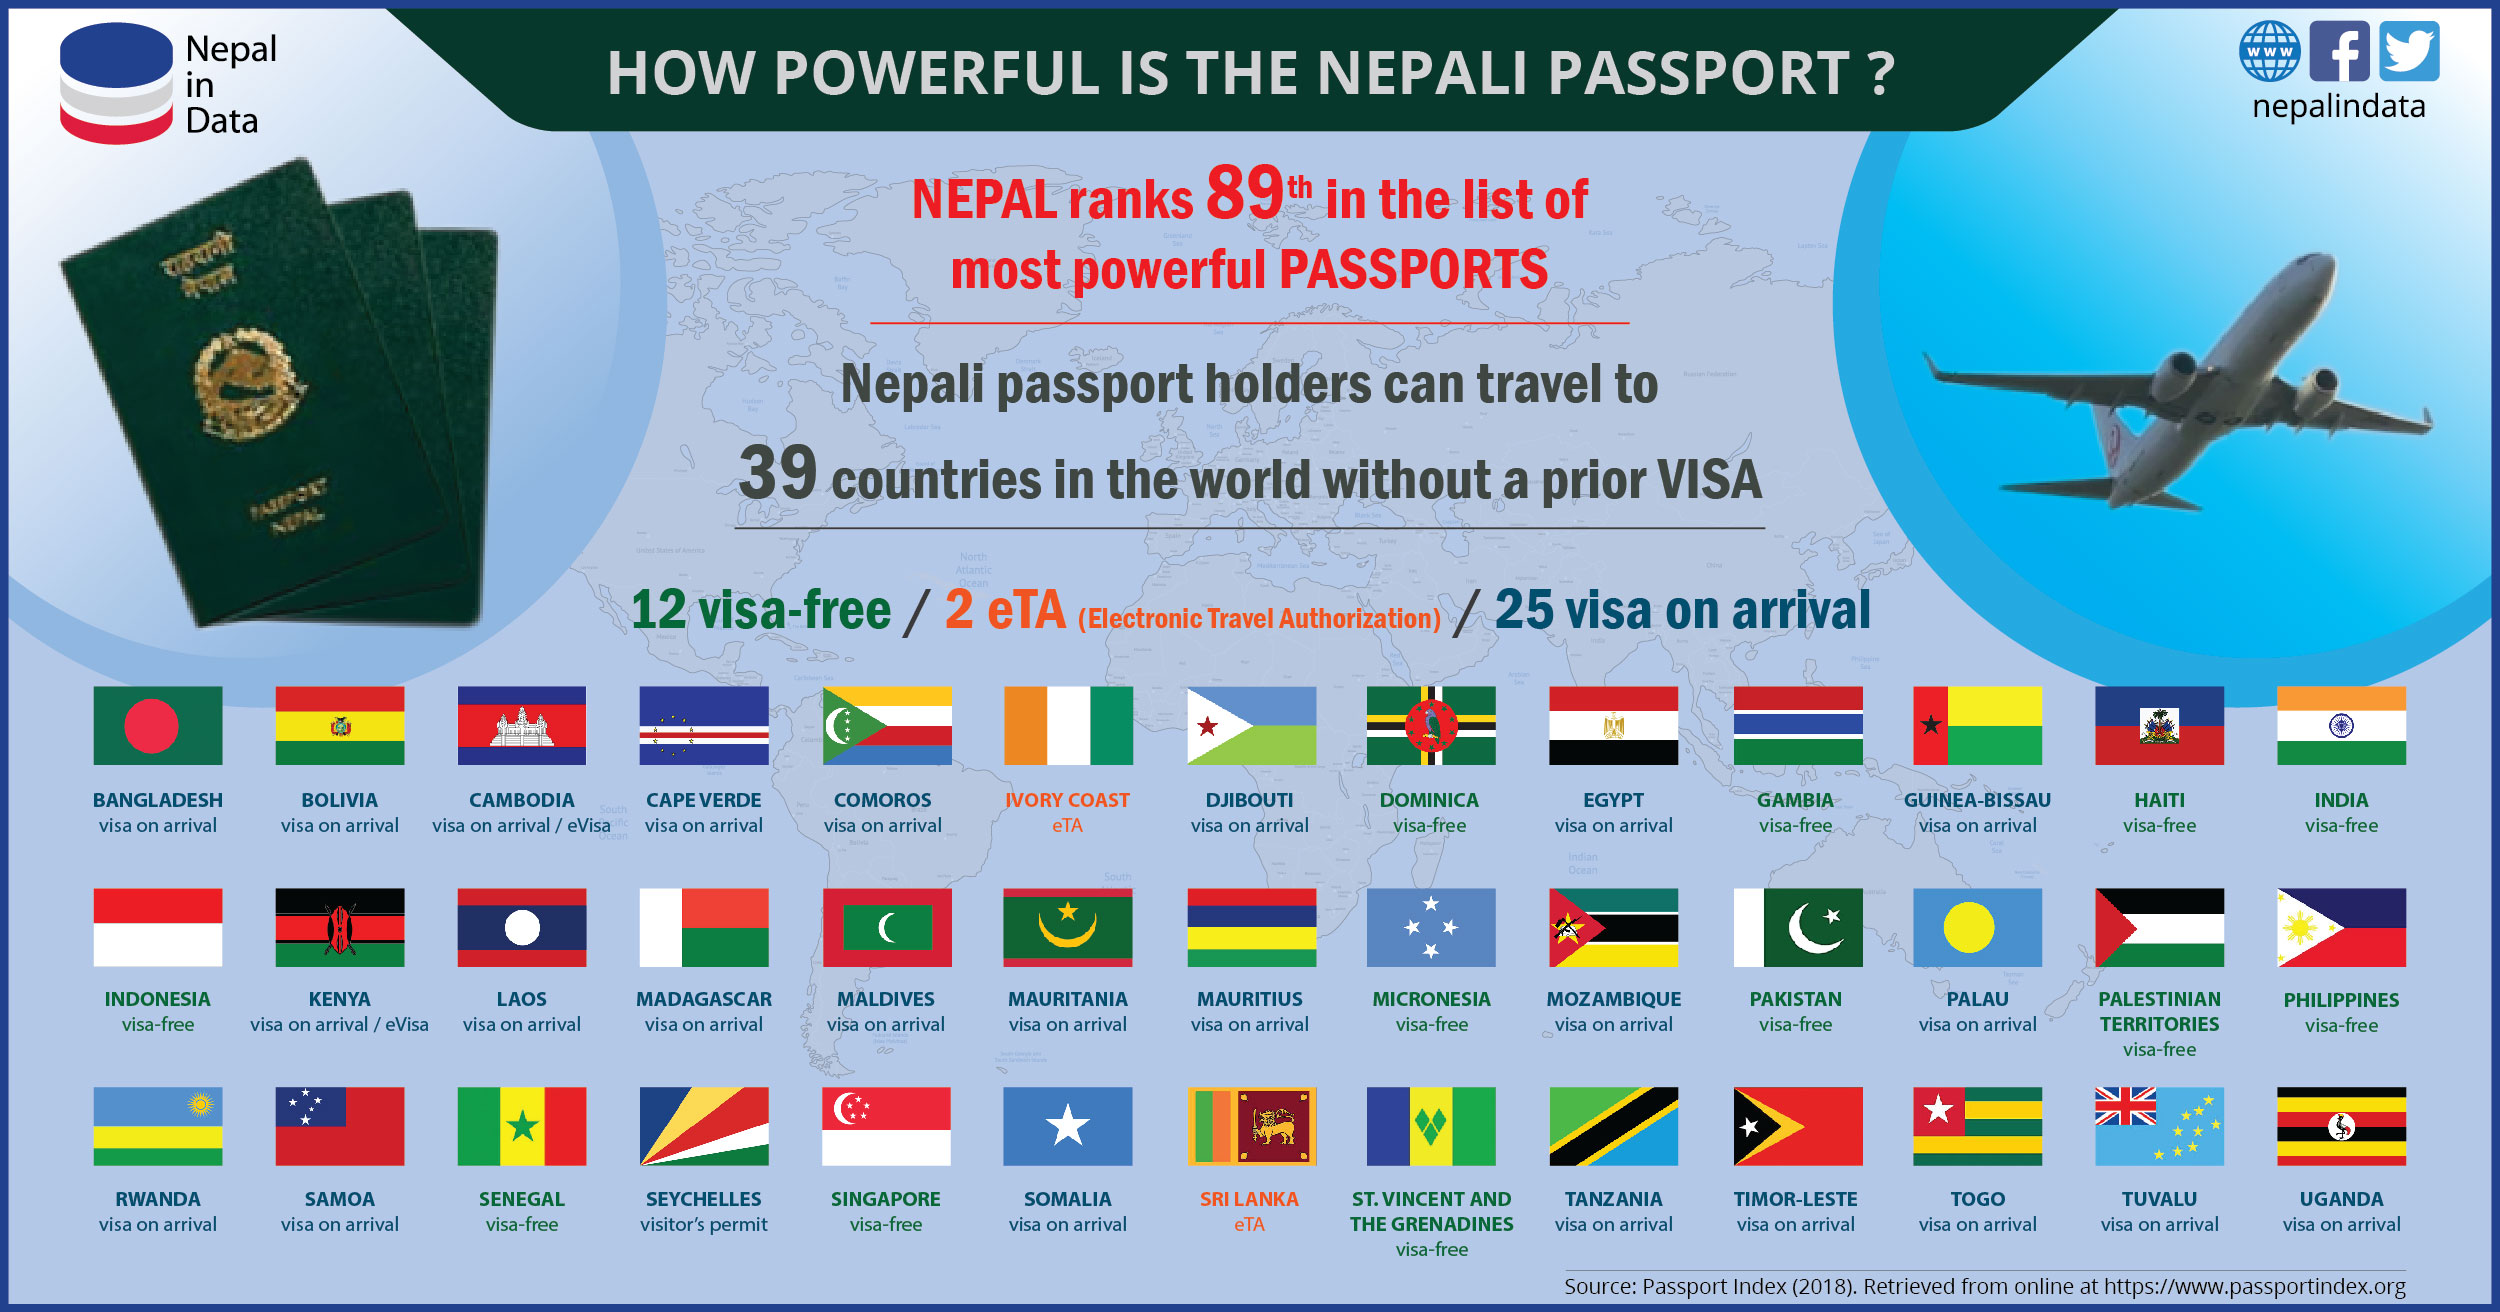 HOW POWERFUL IS THE NEPALI PASSPORT? | NiD - Infograph